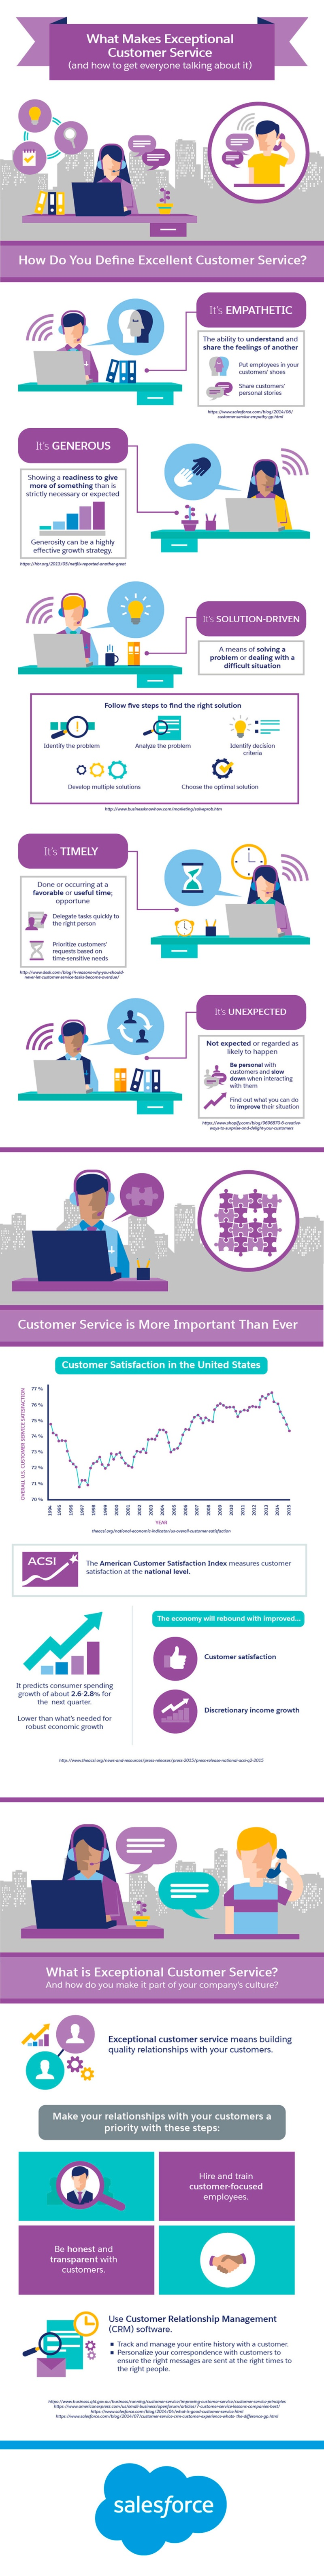 what makes exceptional customer service embed image